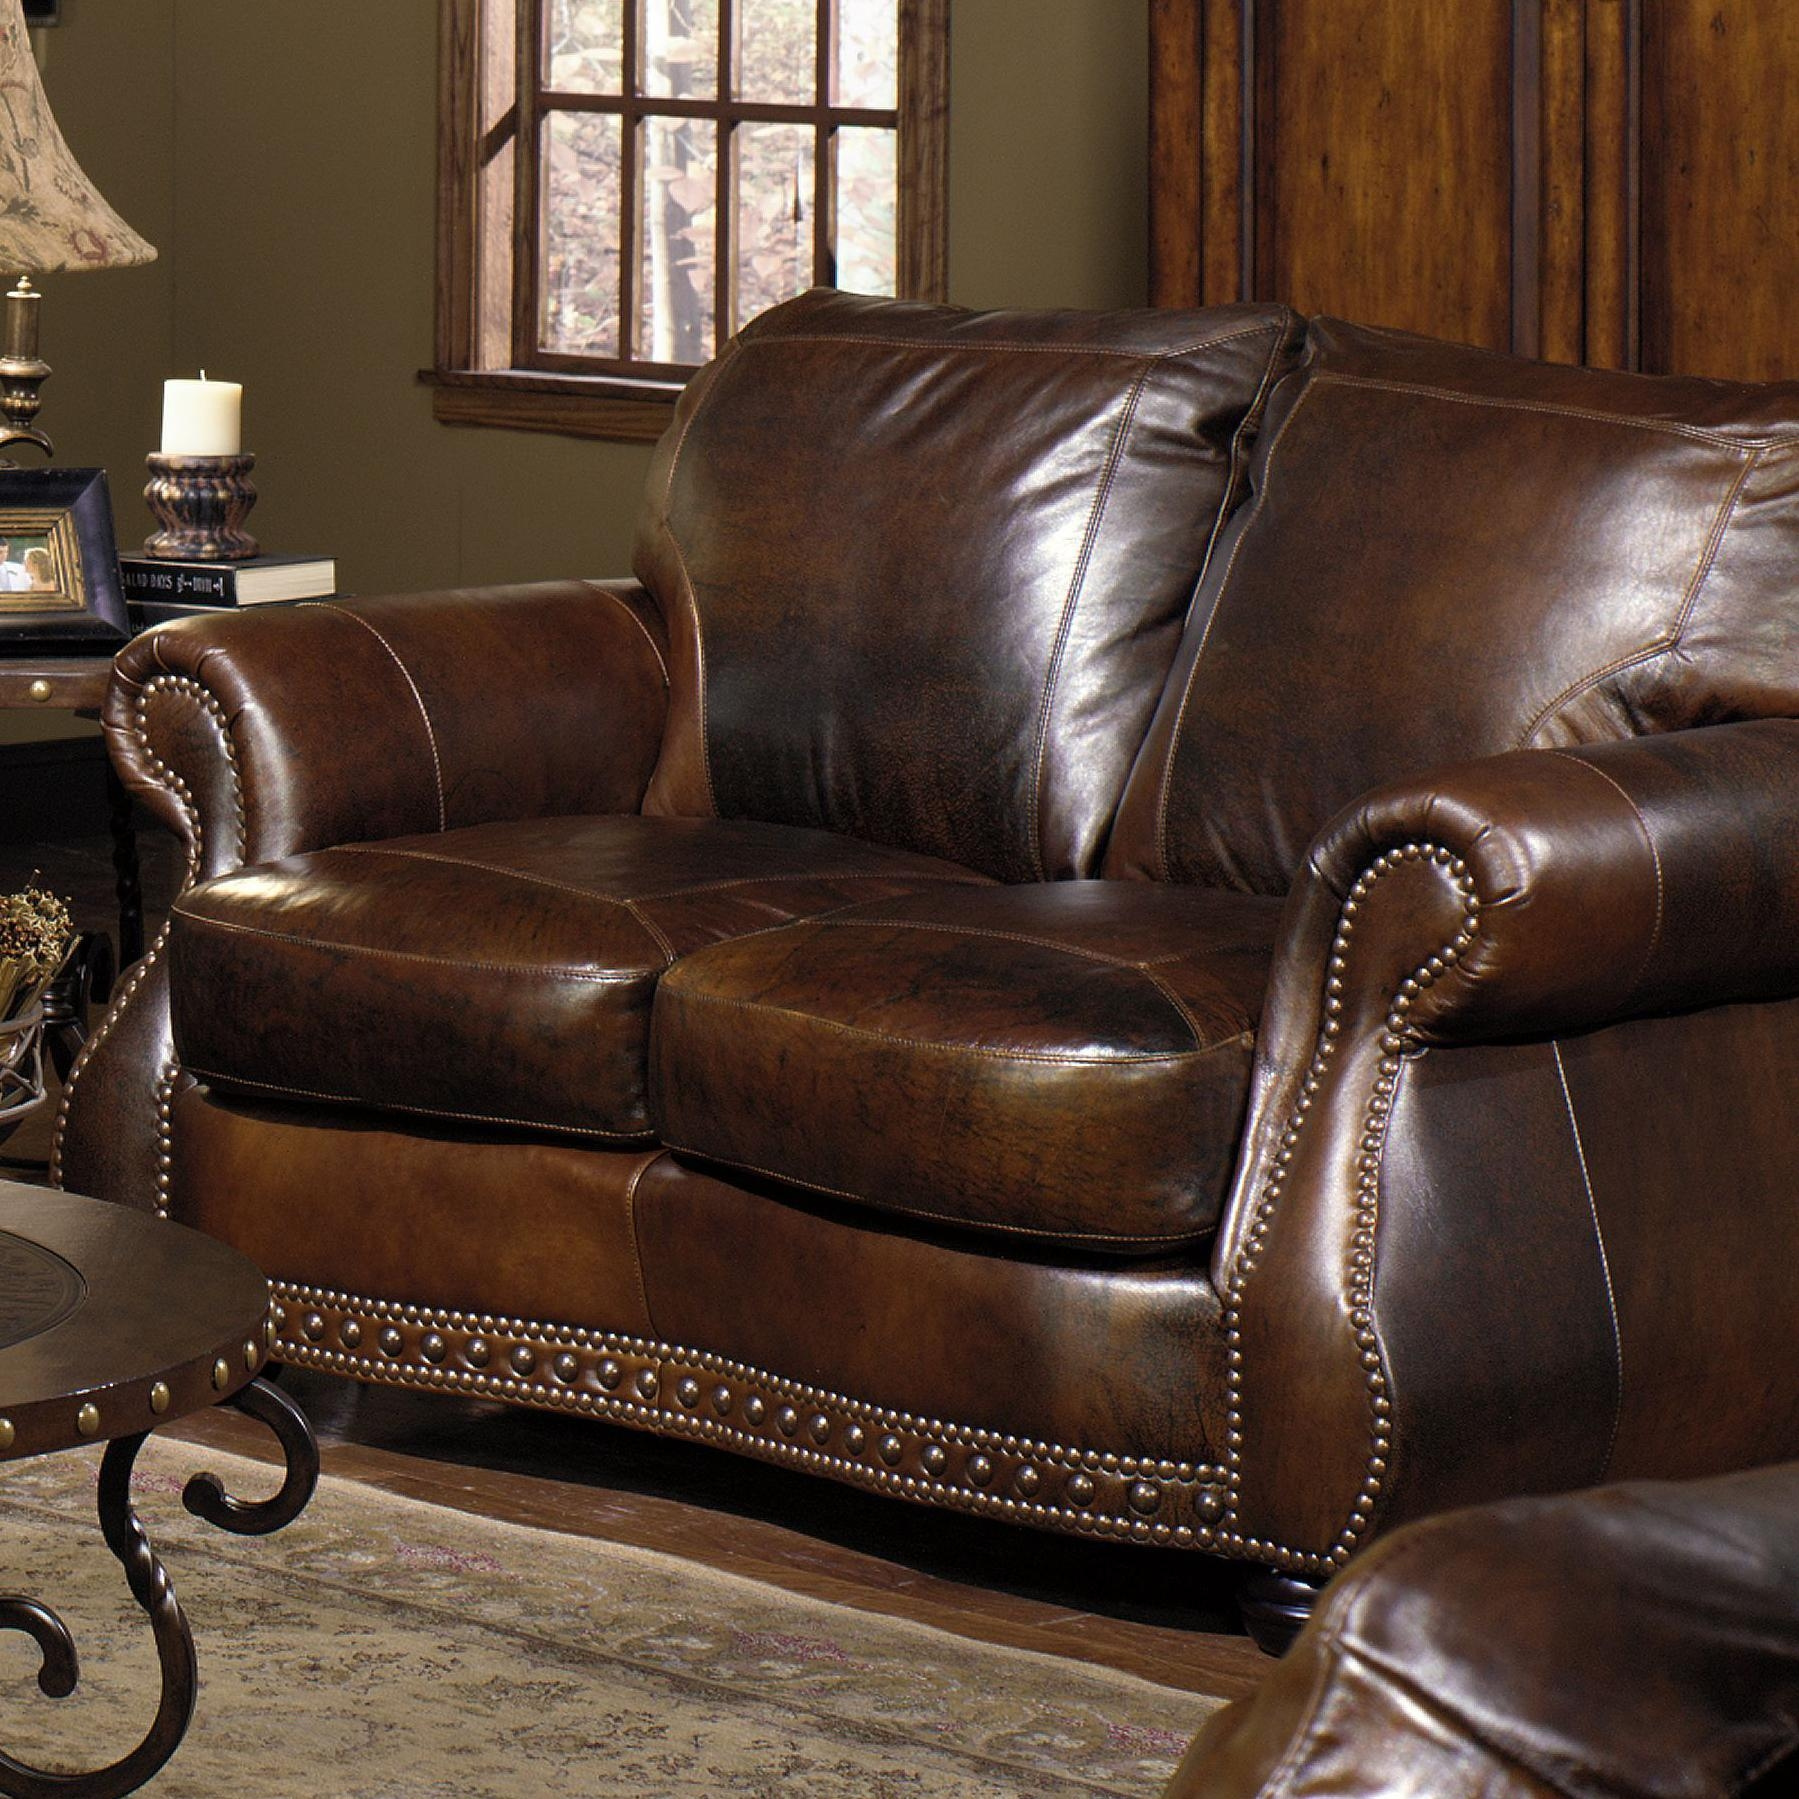 Loveseat W/ Nail Head Trimmingusa Premium Leather | Wolf And With Regard To Brown Leather Sofas With Nailhead Trim (Image 12 of 20)